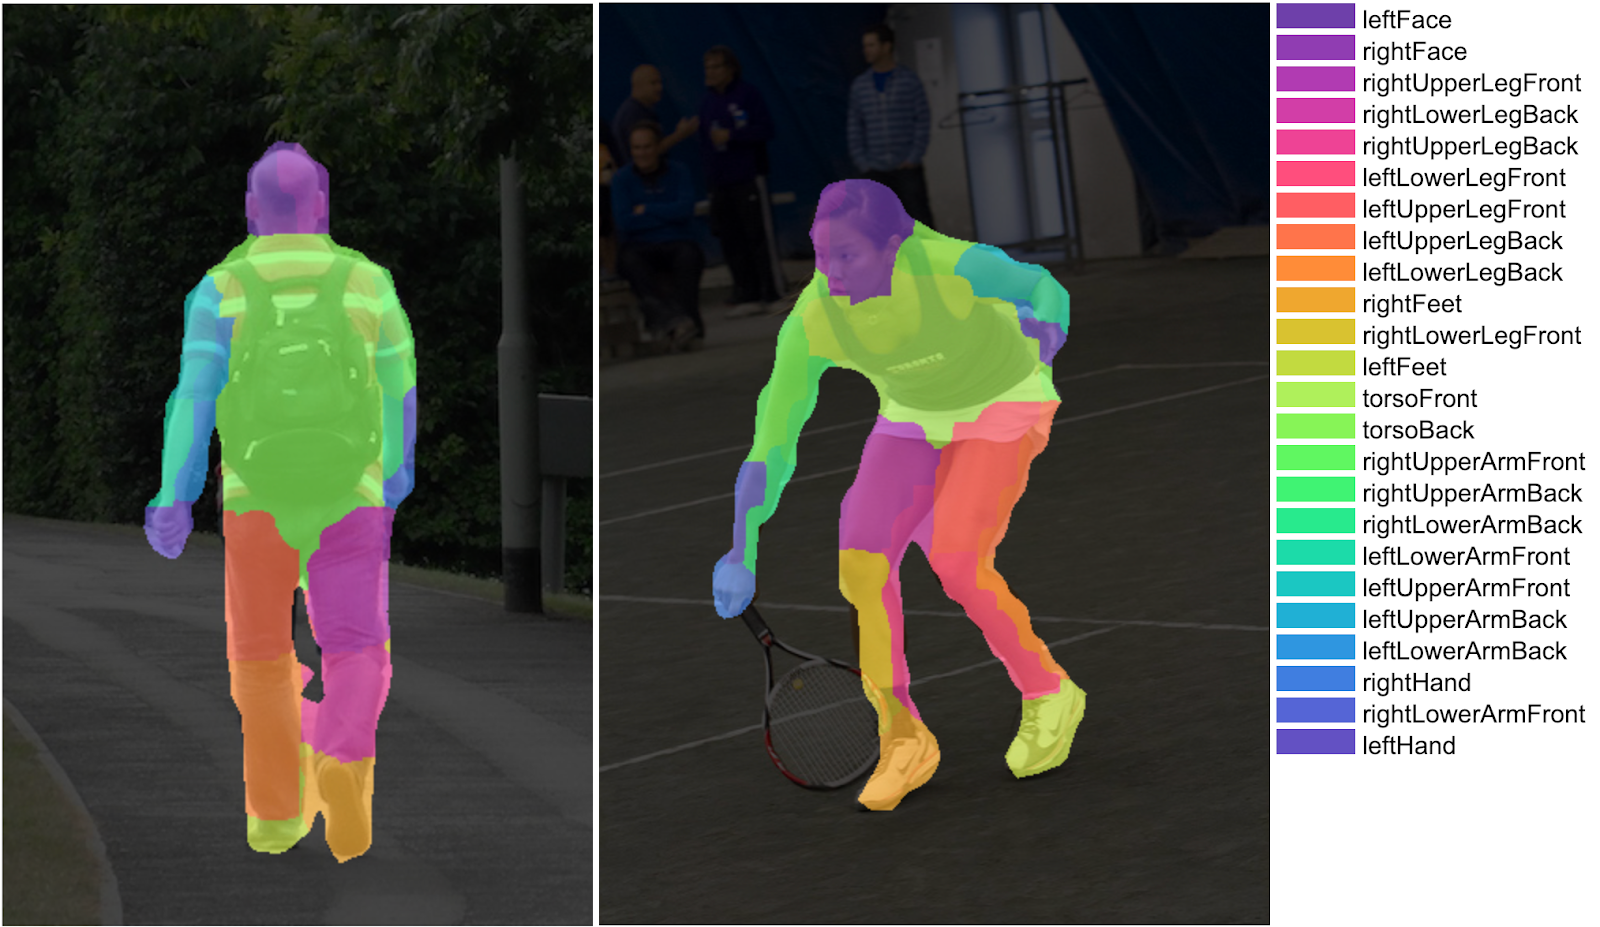 BodyPix: Real-time Person Segmentation in the Browser with